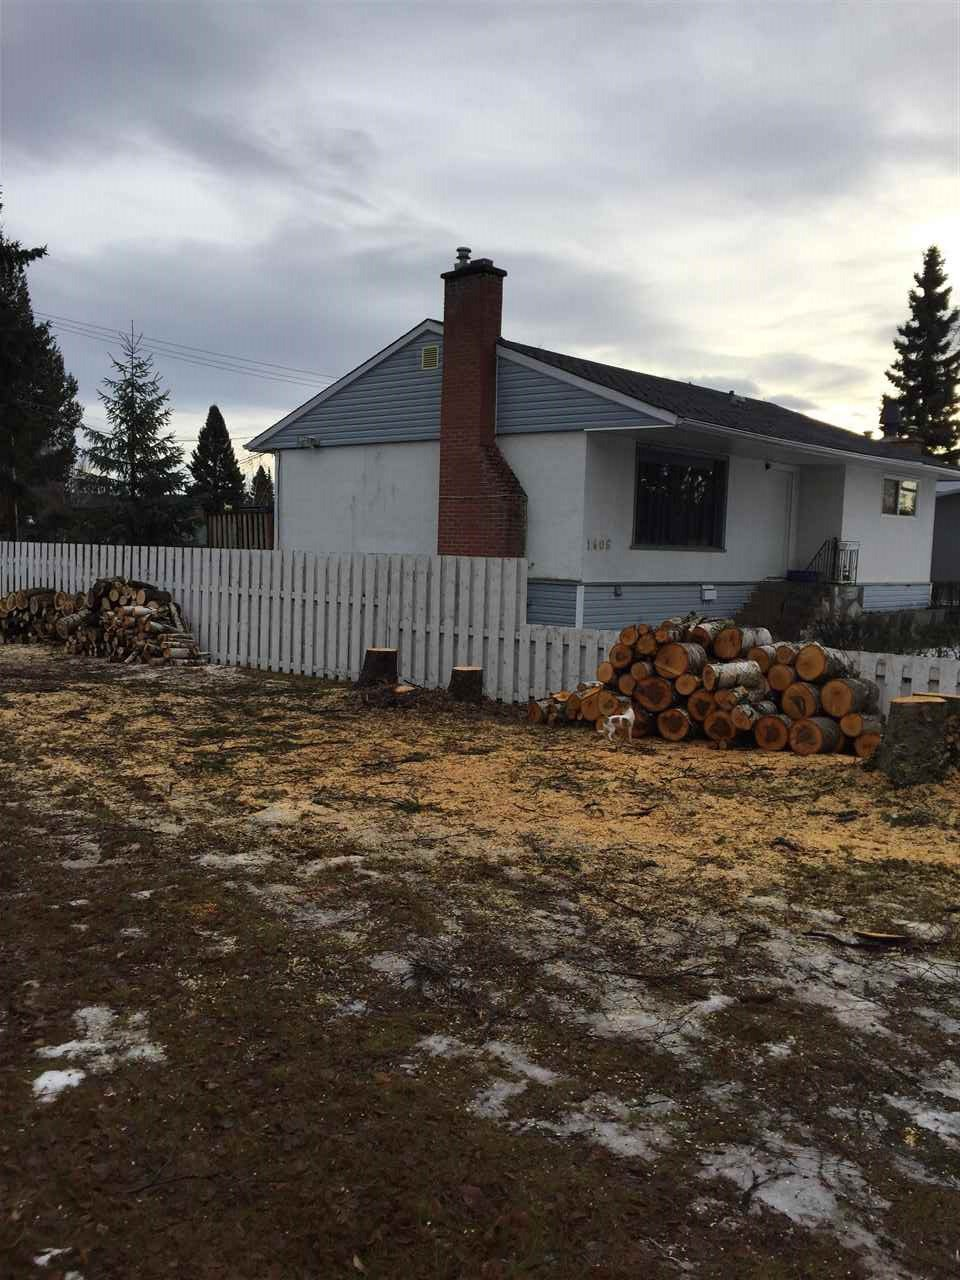 Main Photo: 1396 DOUGLAS Street in Prince George: Central Land for sale (PG City Central (Zone 72))  : MLS®# R2411013